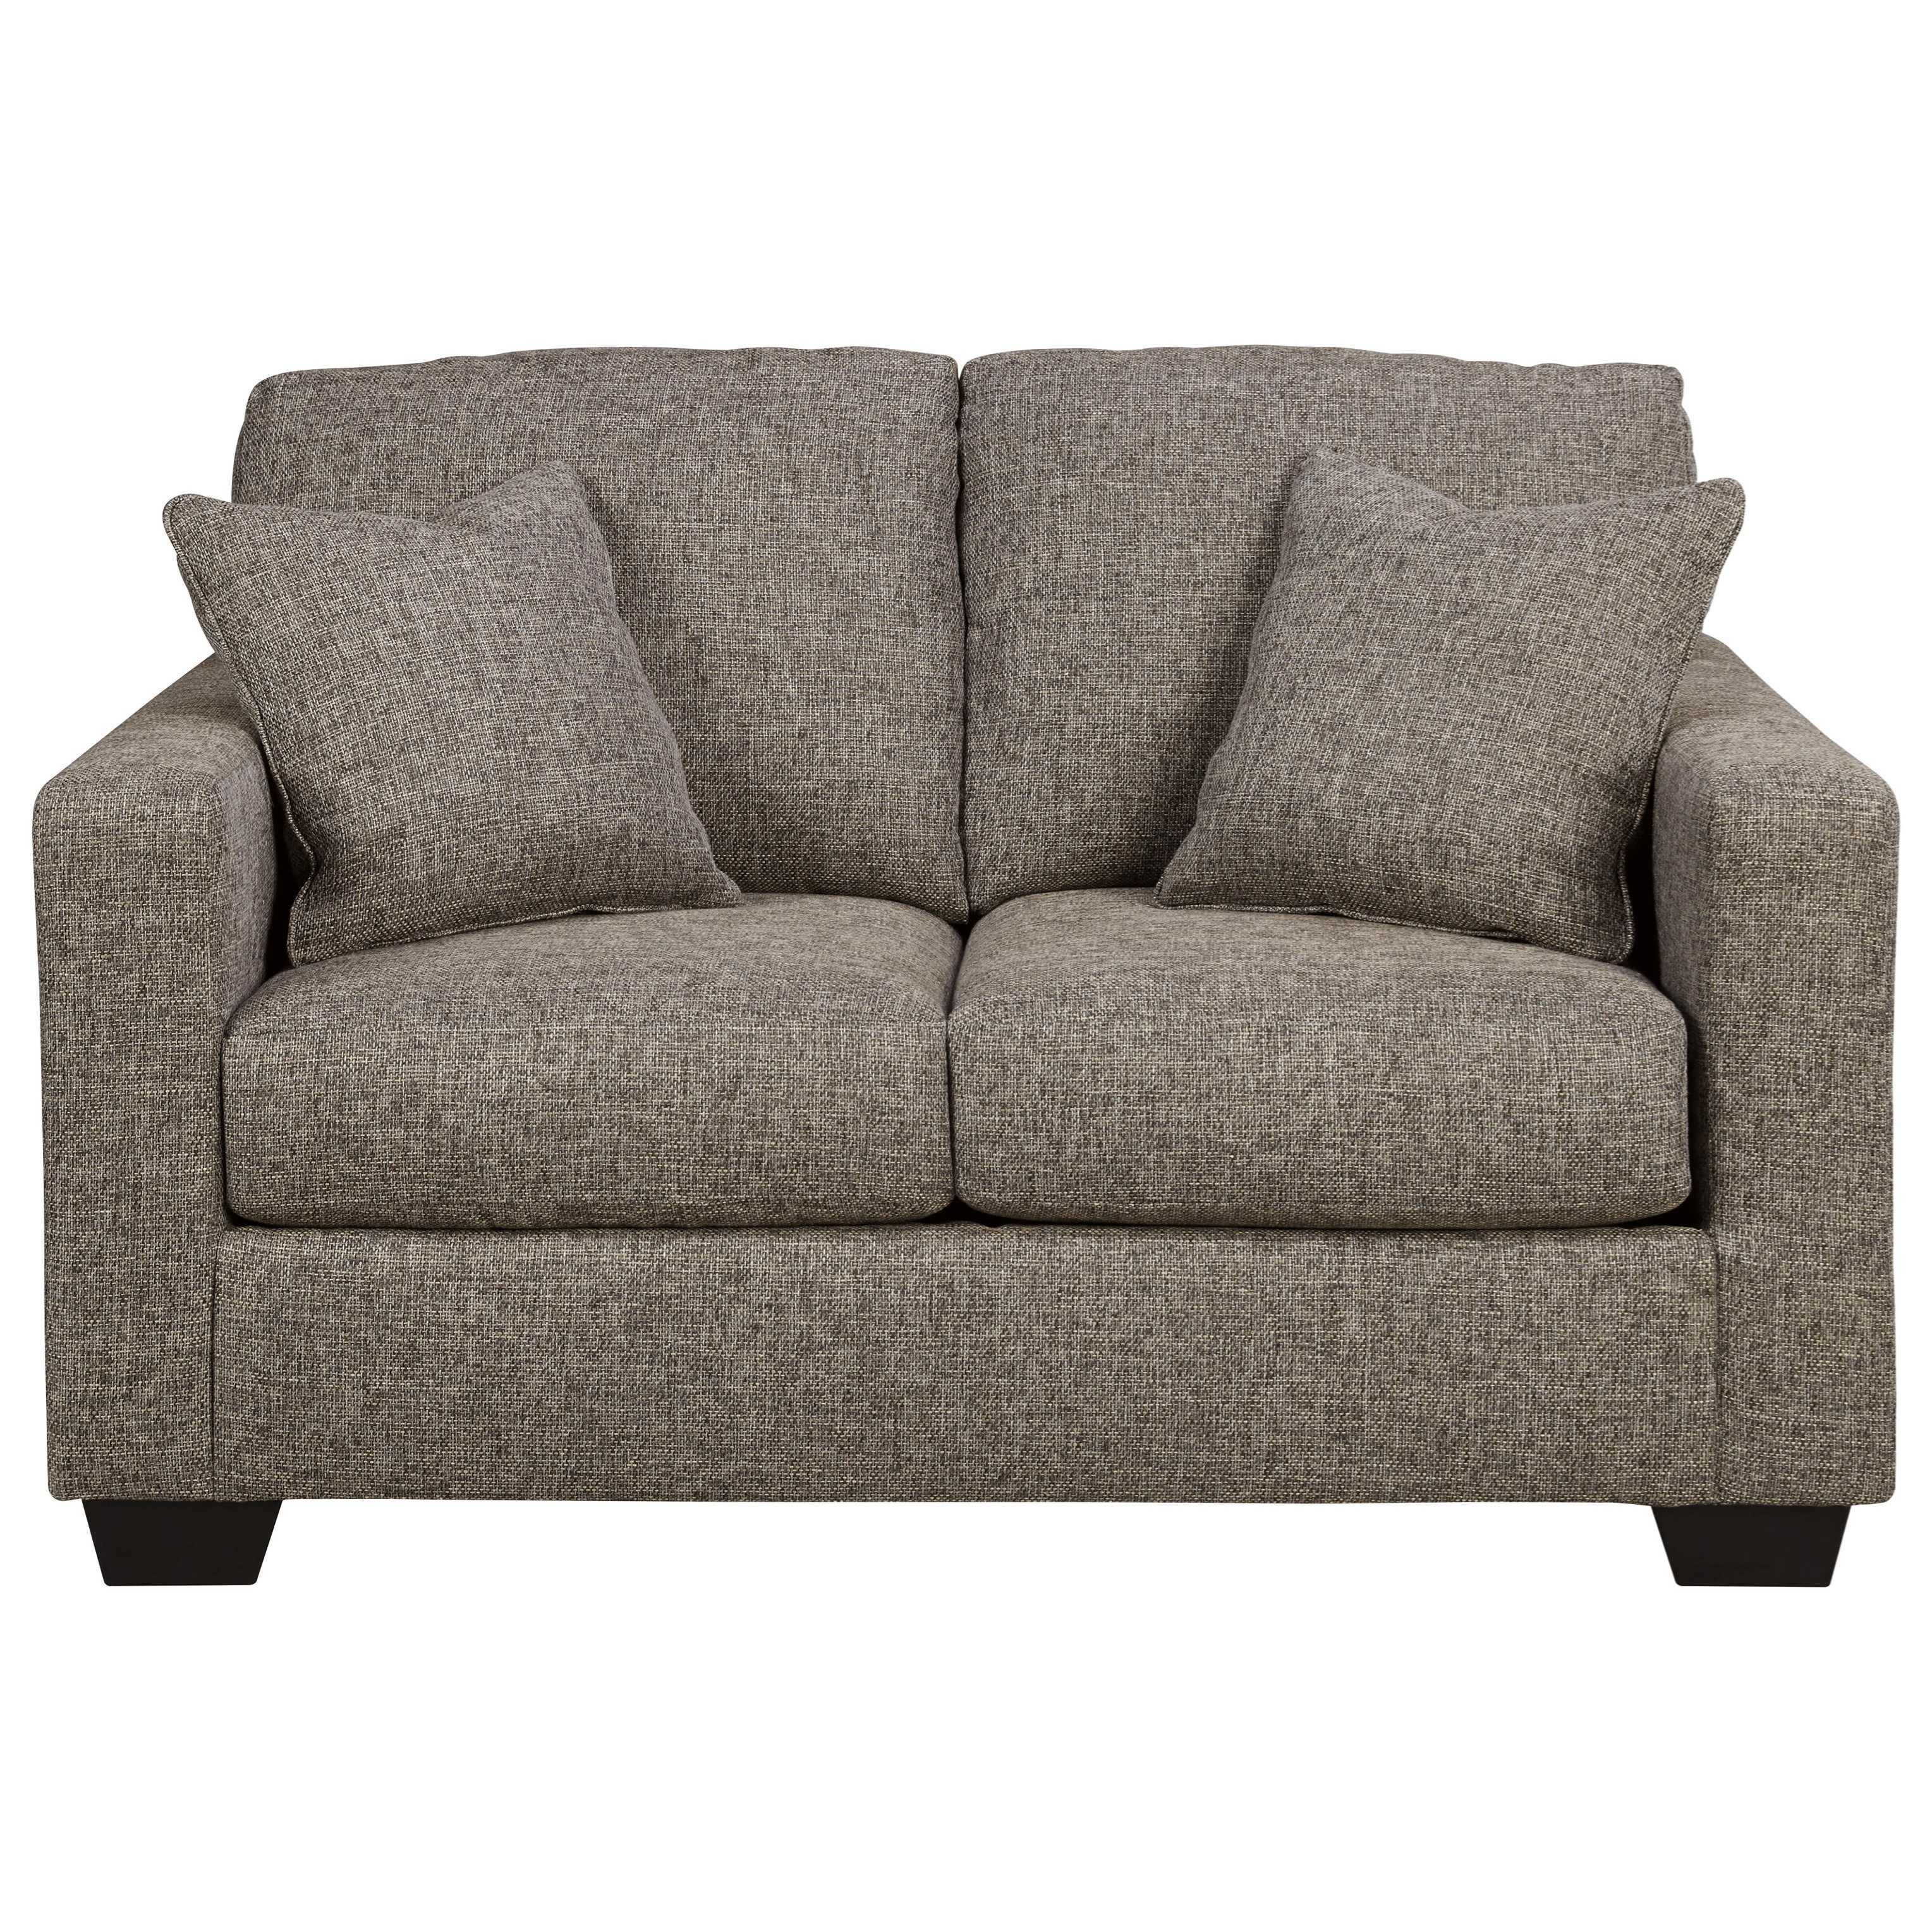 Ashley Furniture Hearne Contemporary Loveseat with Track Arms